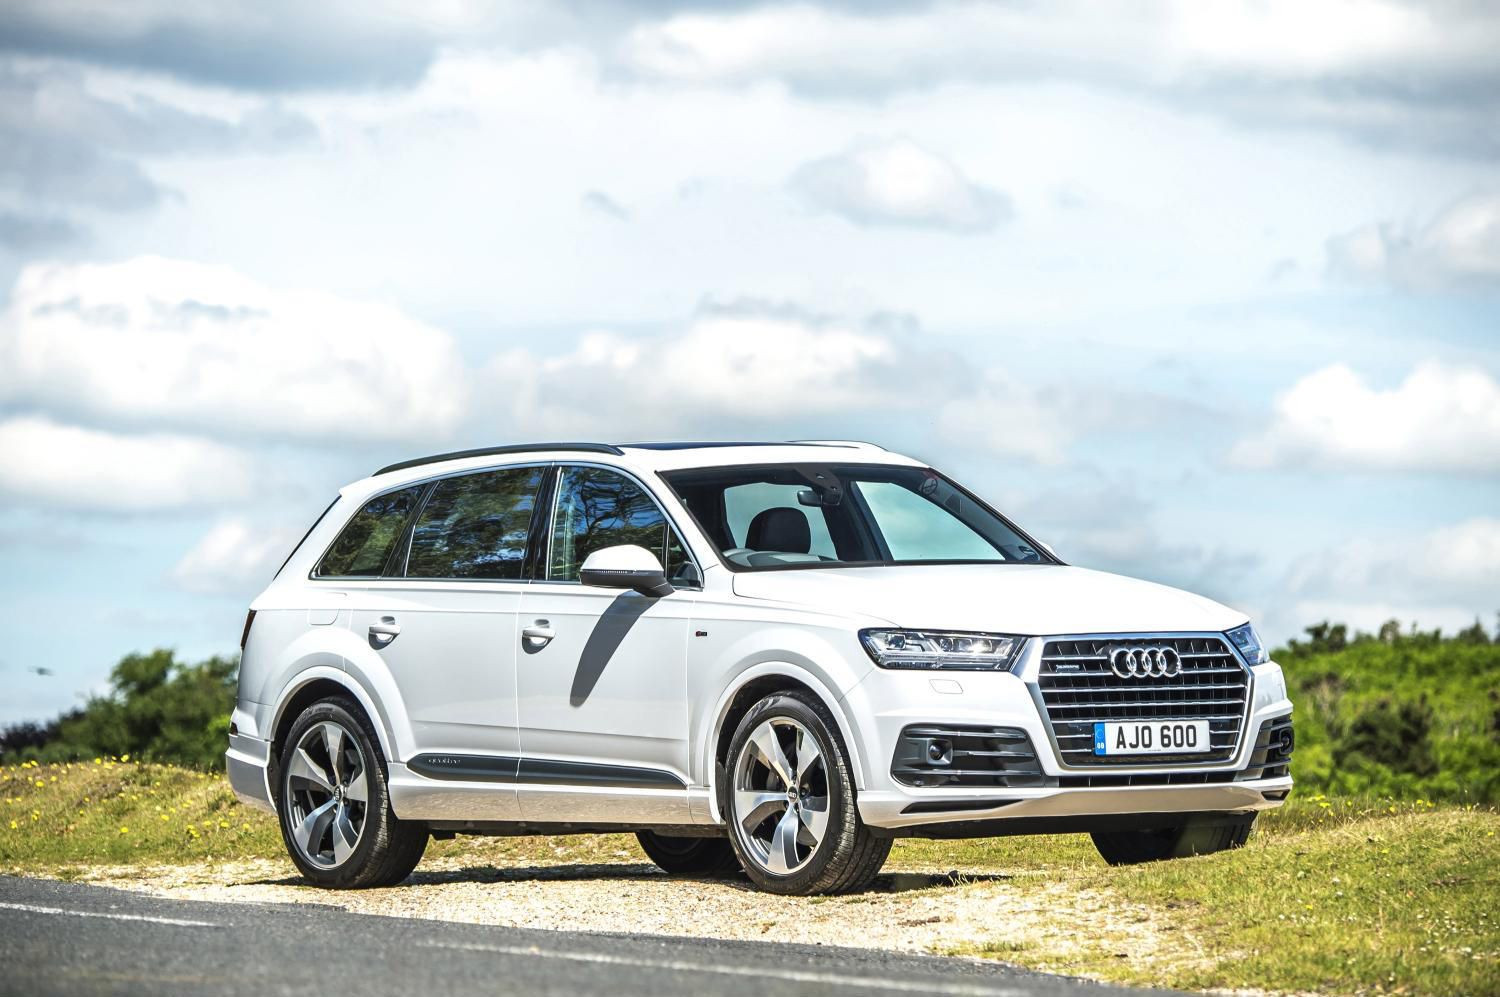 White Audi Q7 parked on grass at the side of the road, facing three-quarters right.